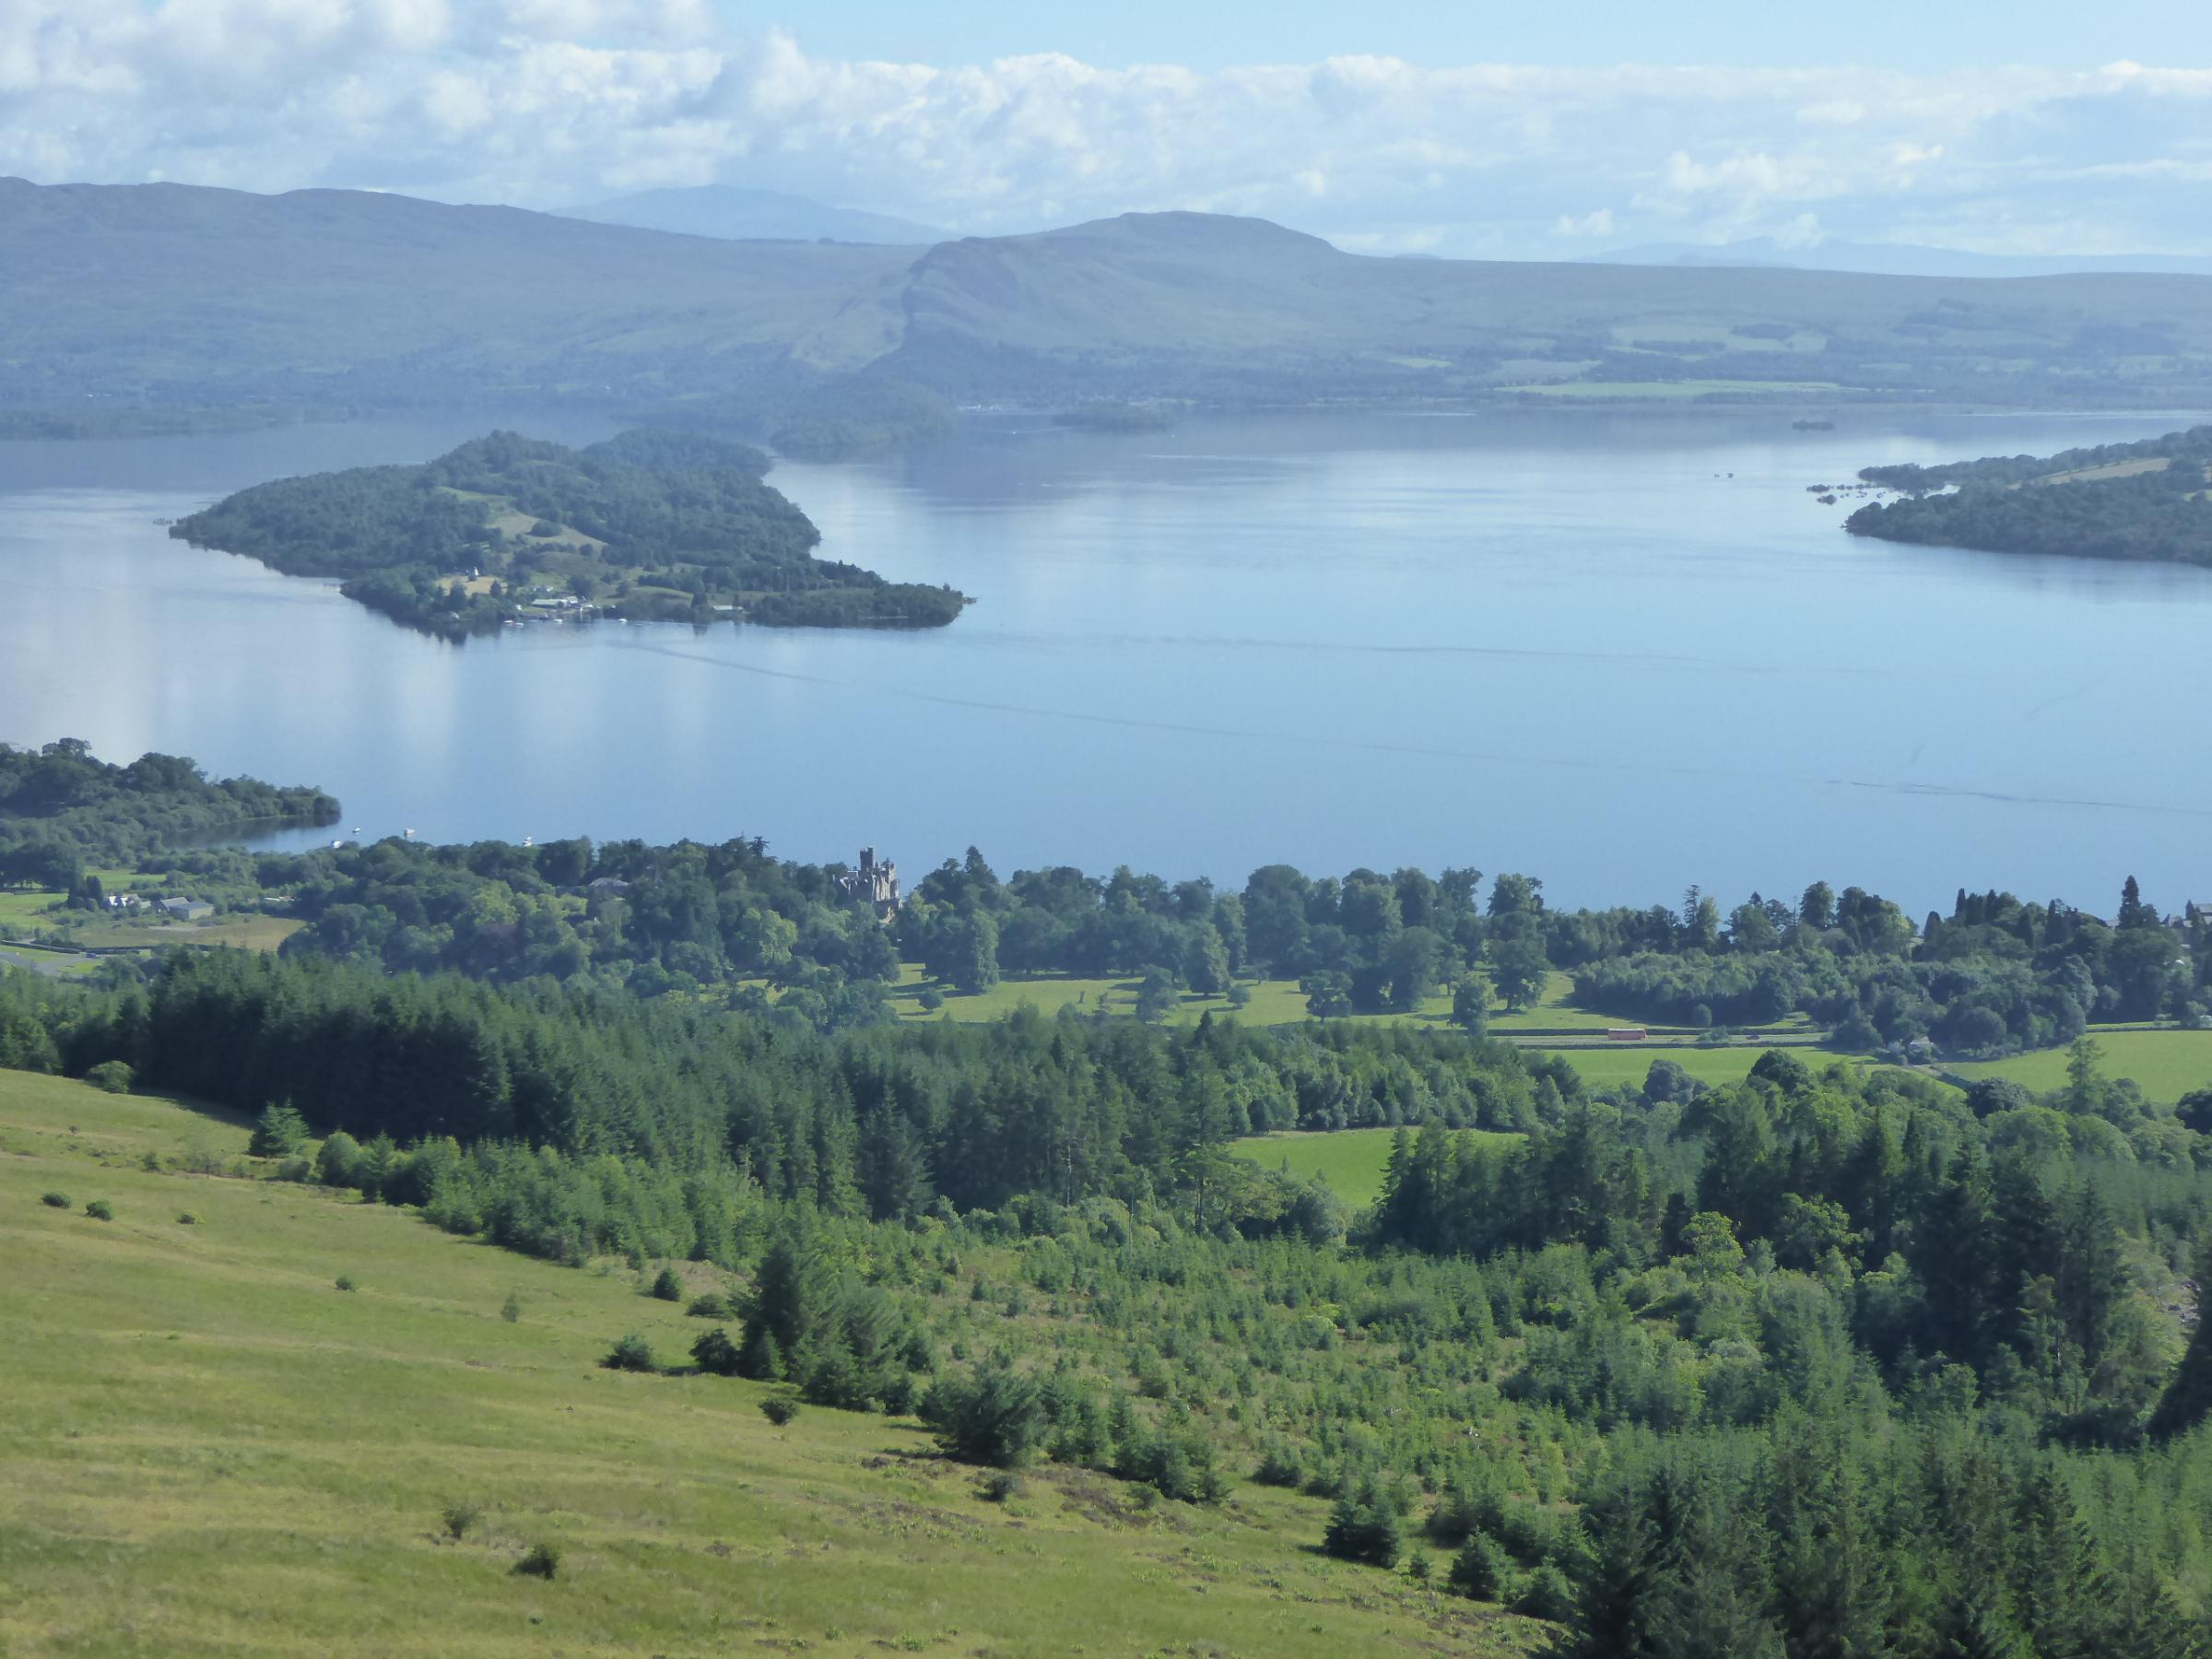 Loch Lomond could provide the backdrop for scenes in the new Lord of the Rings prequel, according to reports (Pic - Steven Flannigan)